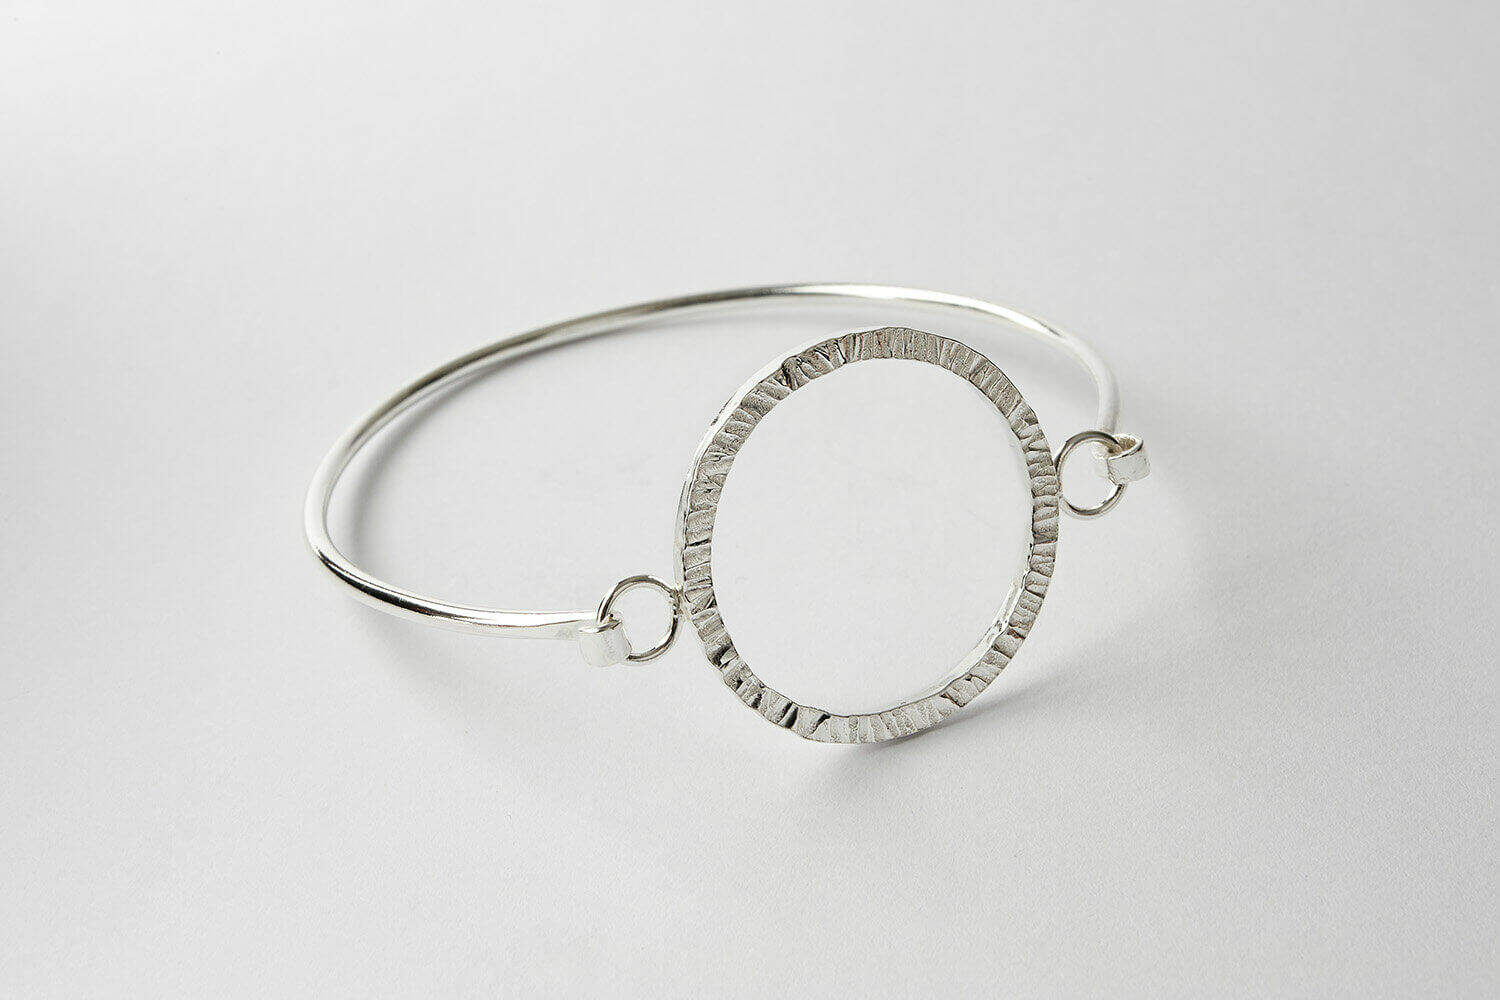 Silver bangle jewellery product photograph for Janet Leitch jewellery designer